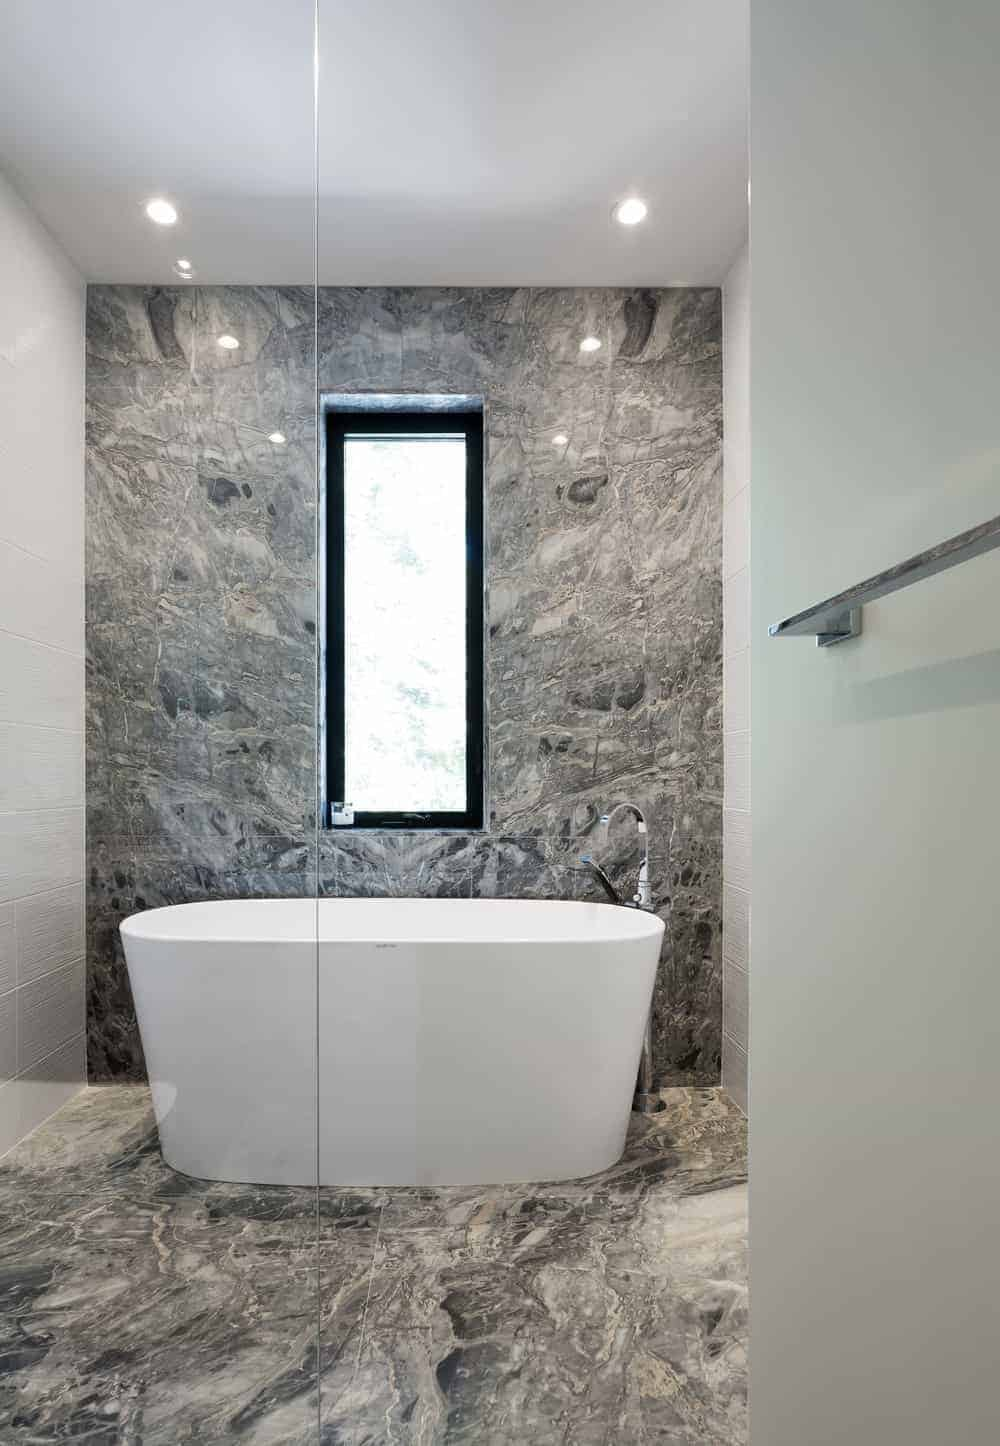 Deluxe bathroom features a deep soaking tub on a gray marble flooring that matches with the accent wall fitted with an aluminum framed glass window.